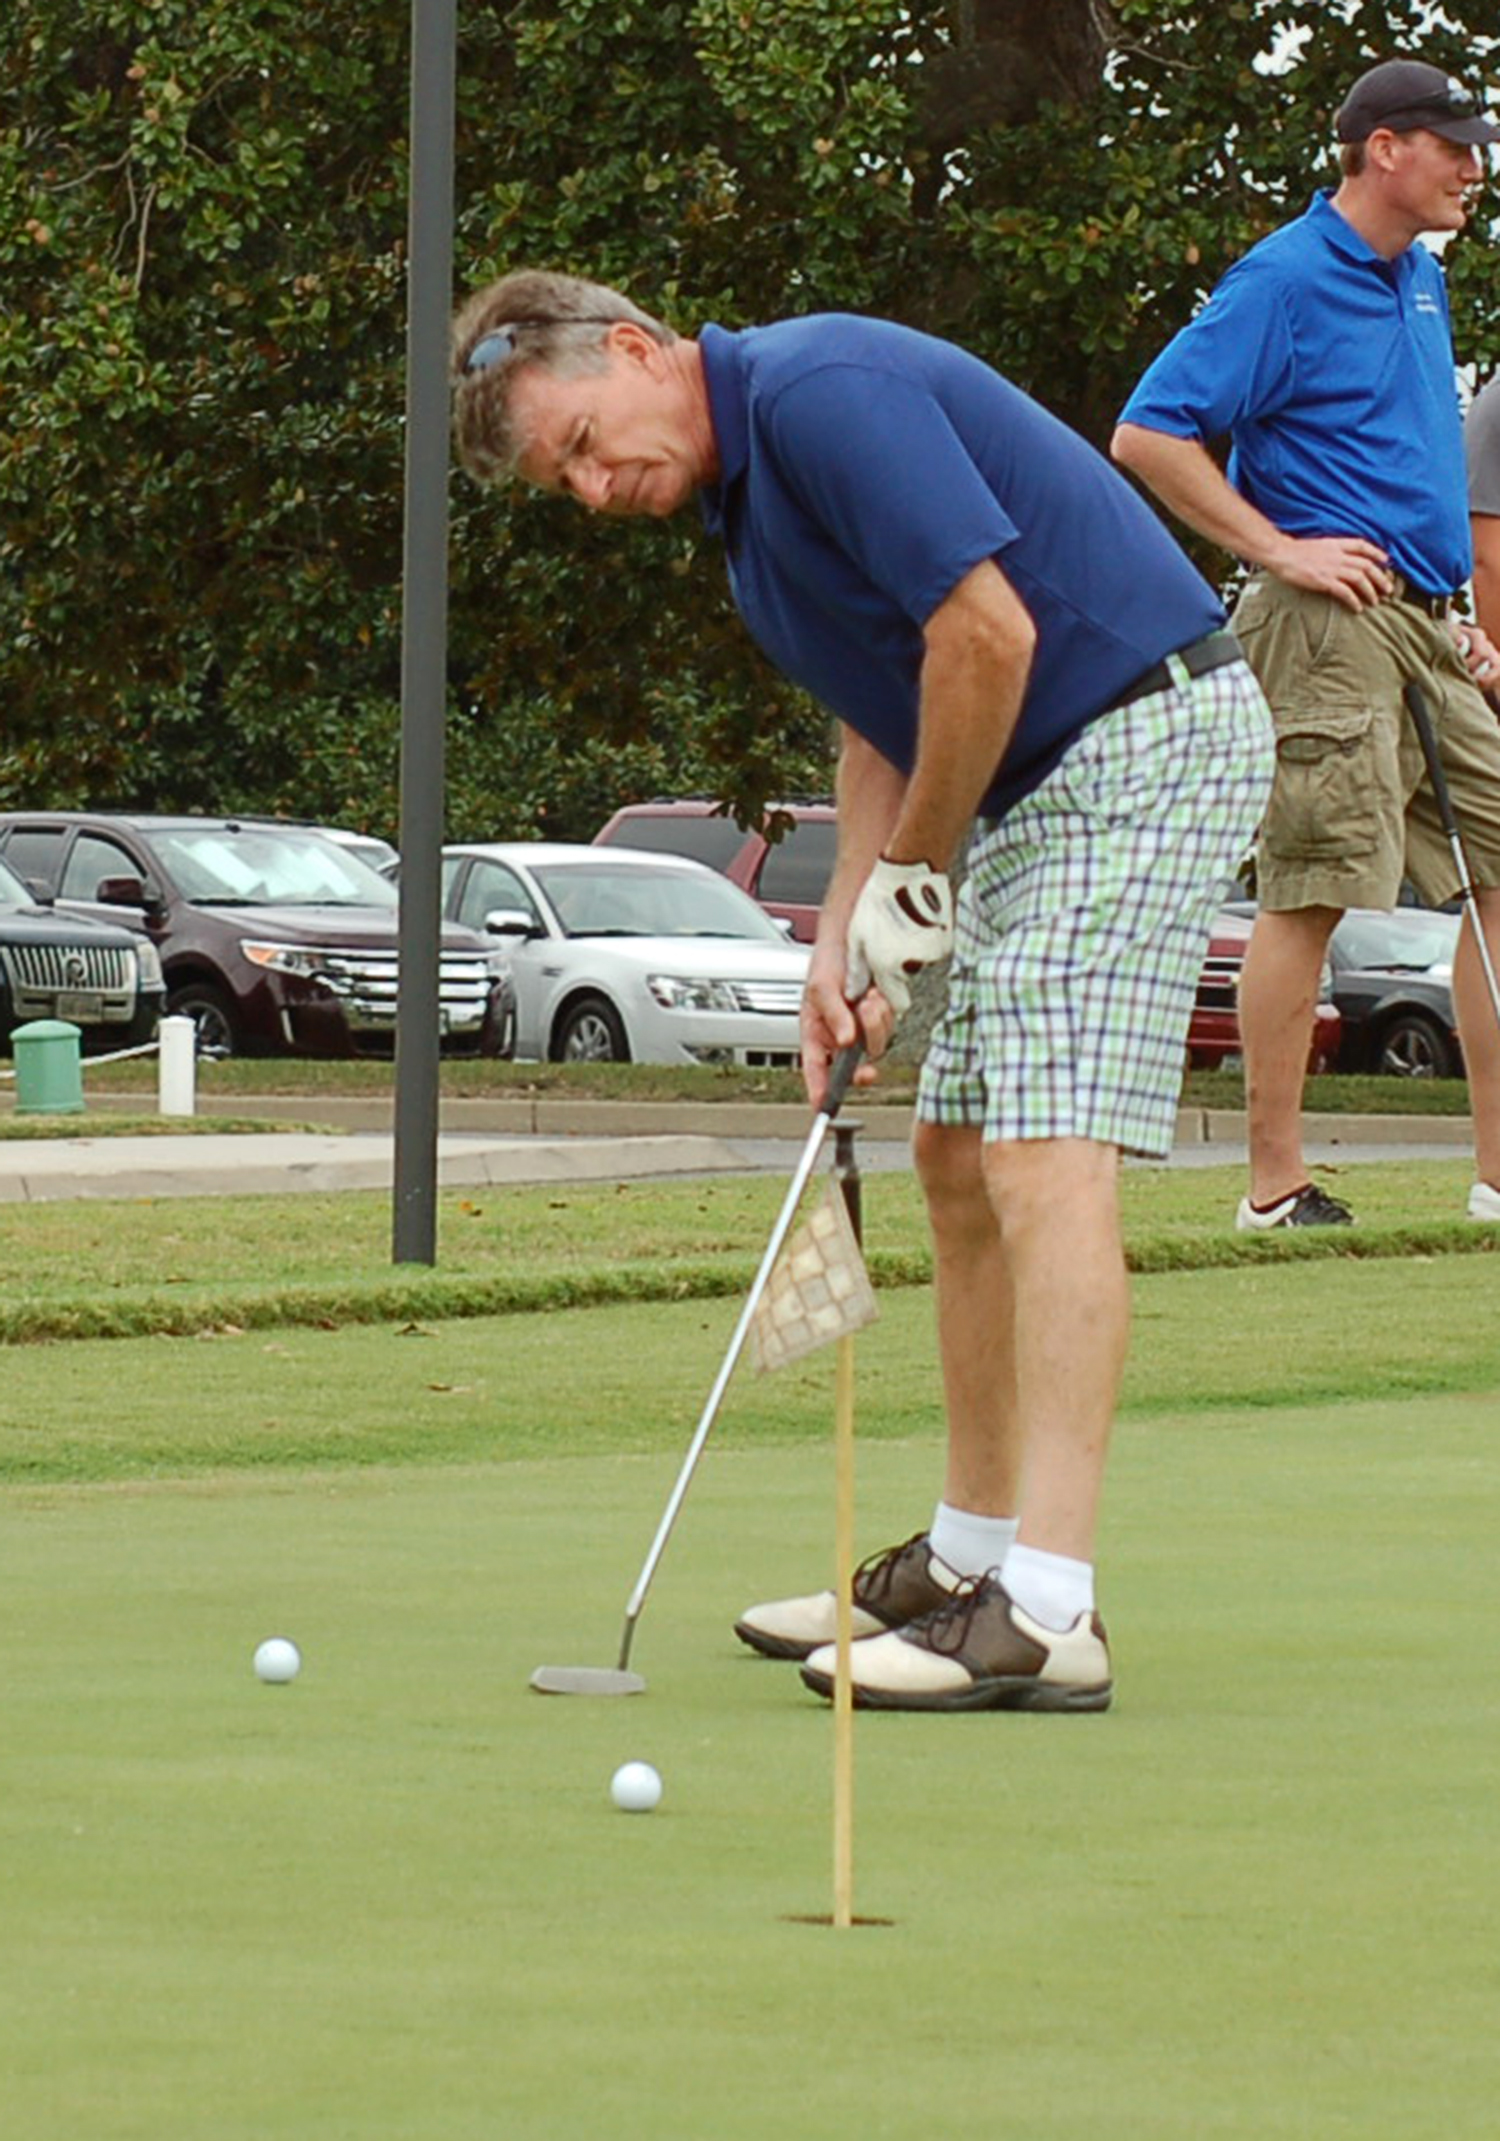 Paul D. Camp Community College Foundation holds 15th annual golf tournament